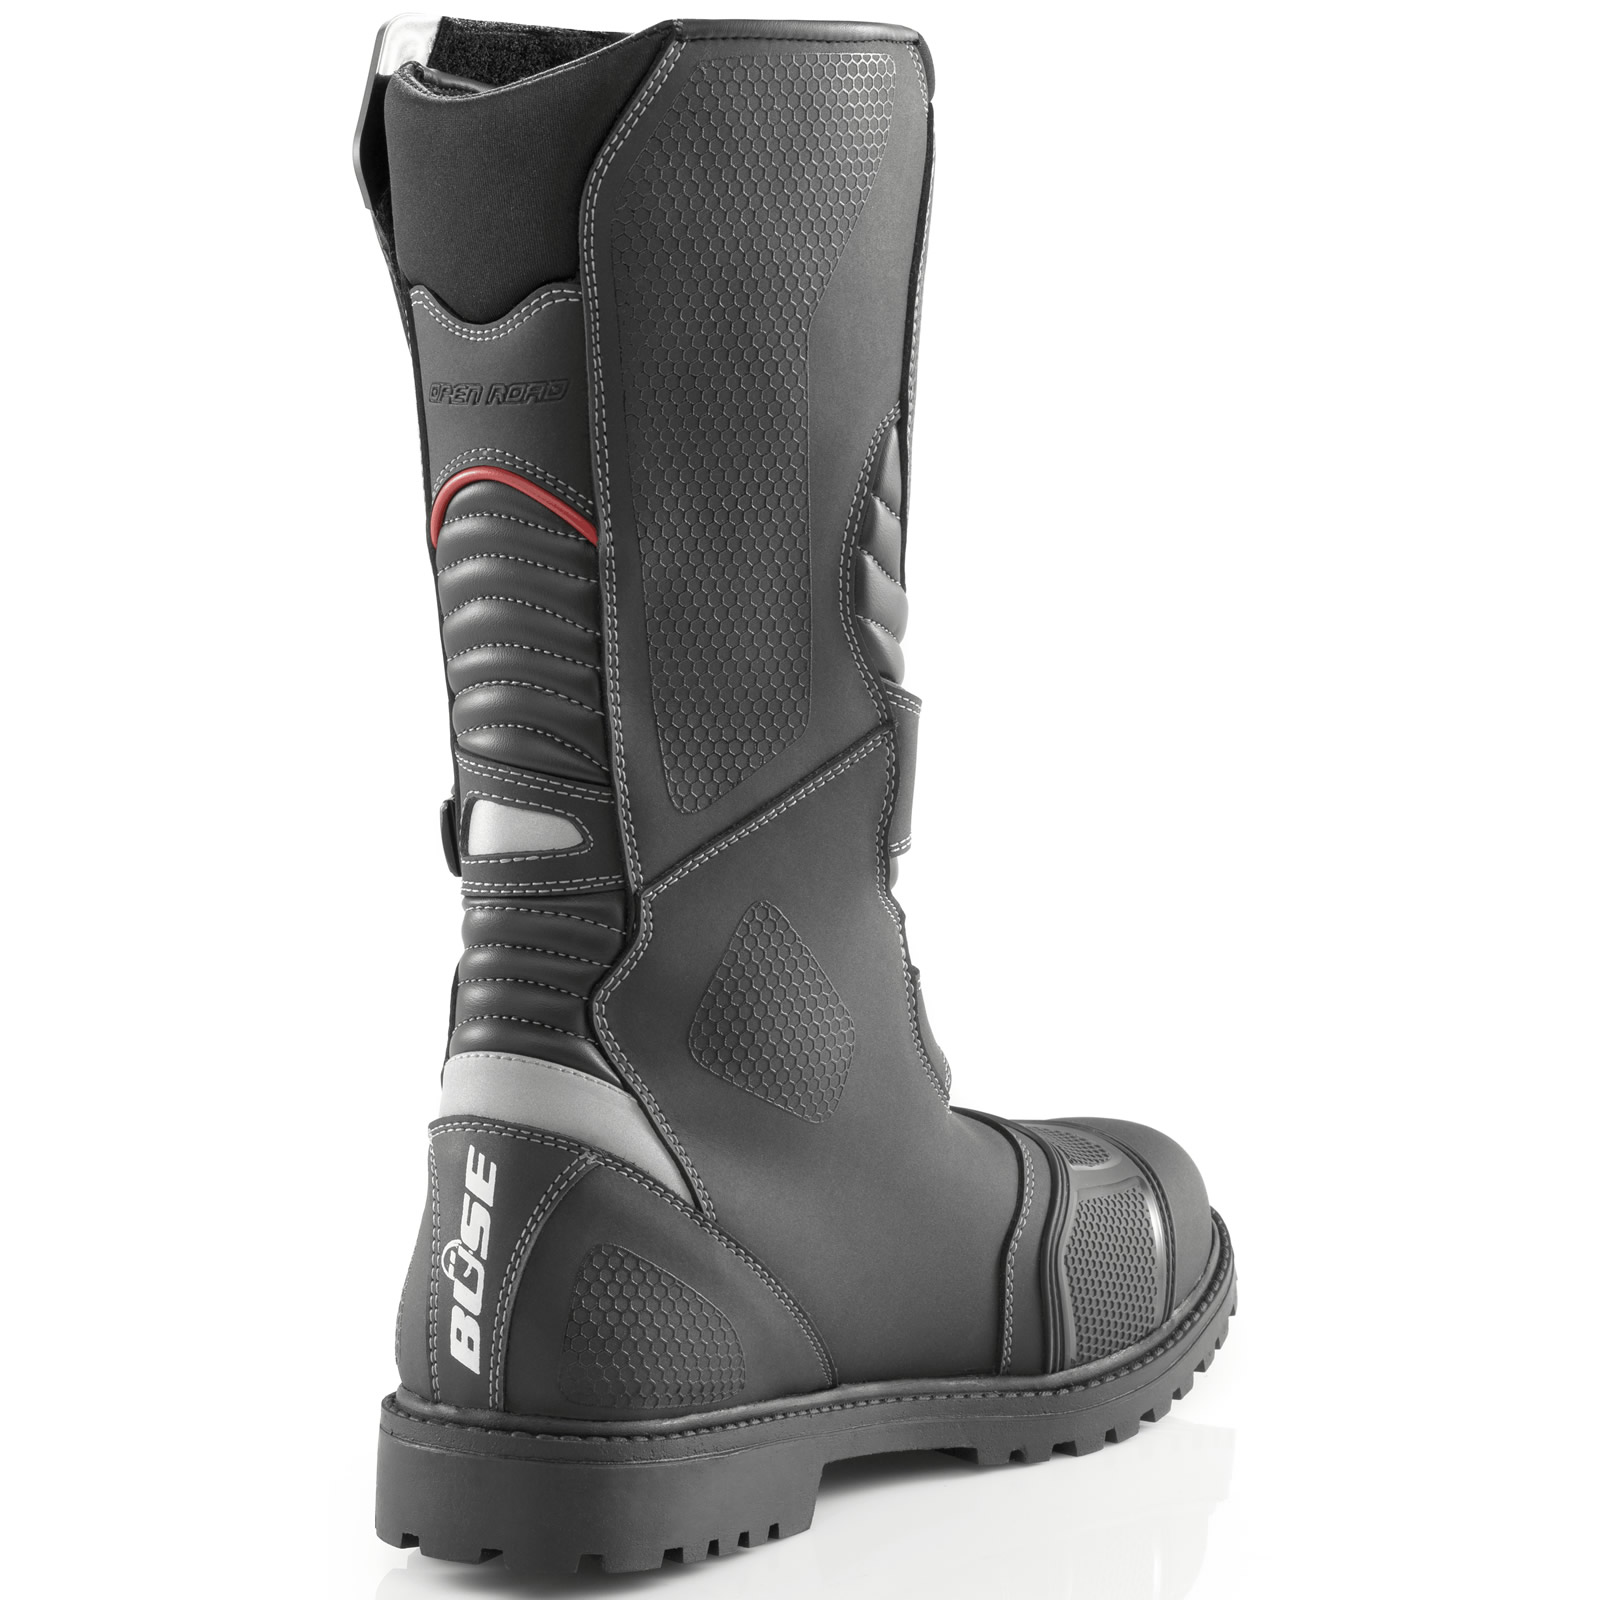 Buse Open Road Adventure Motorcycle Boots Motorbike Off Road Green ...